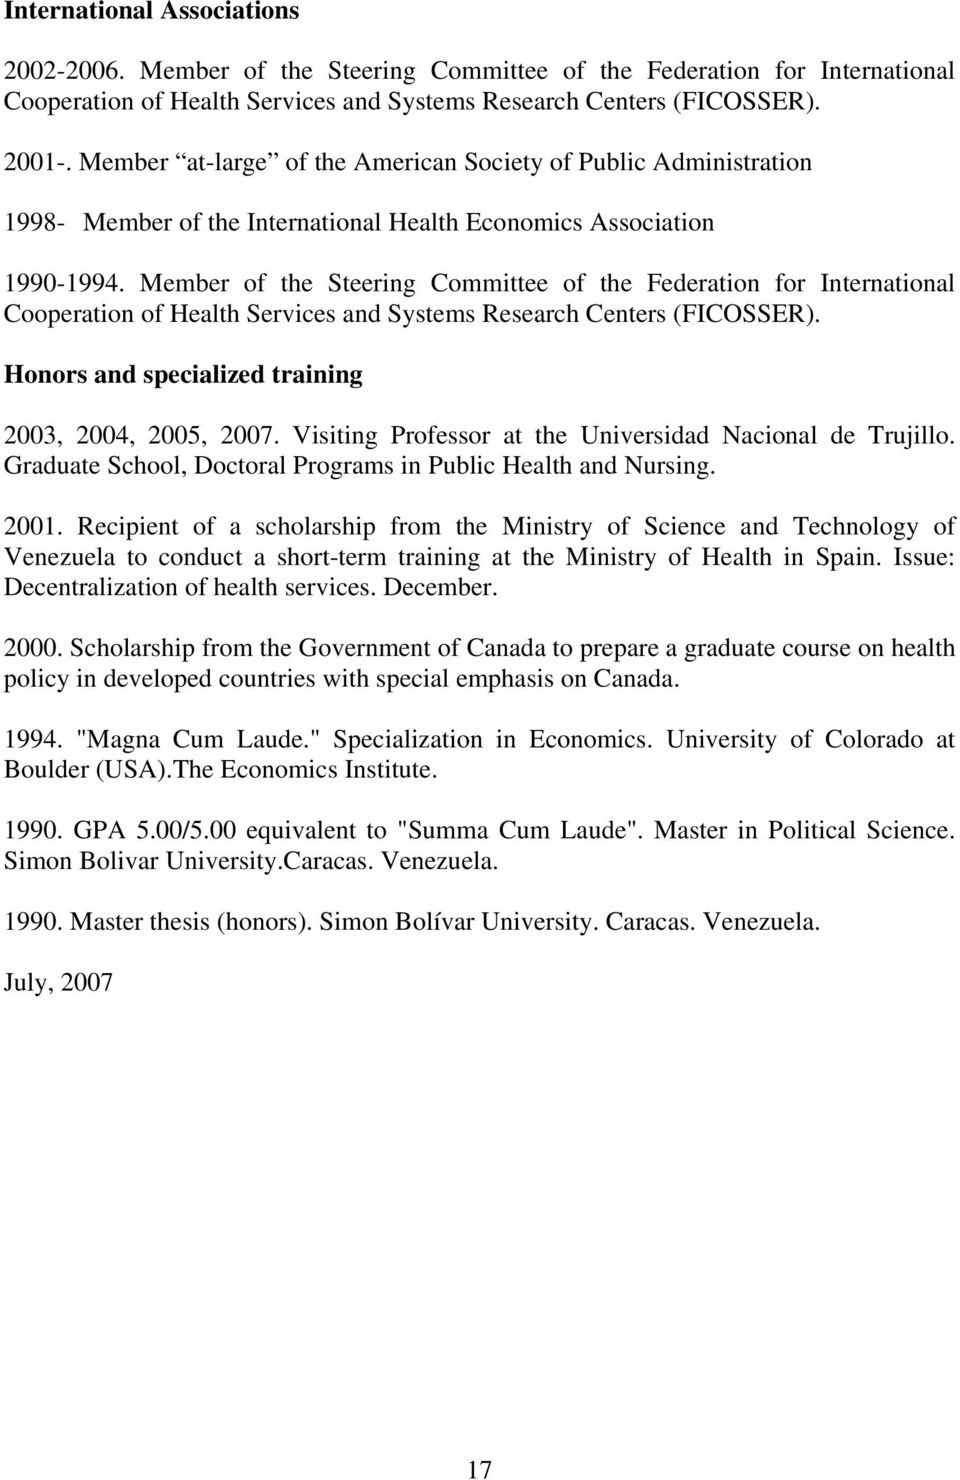 Member of the Steering Committee of the Federation for International Cooperation of Health Services and Systems Research Centers (FICOSSER). Honors and specialized training 2003, 2004, 2005, 2007.